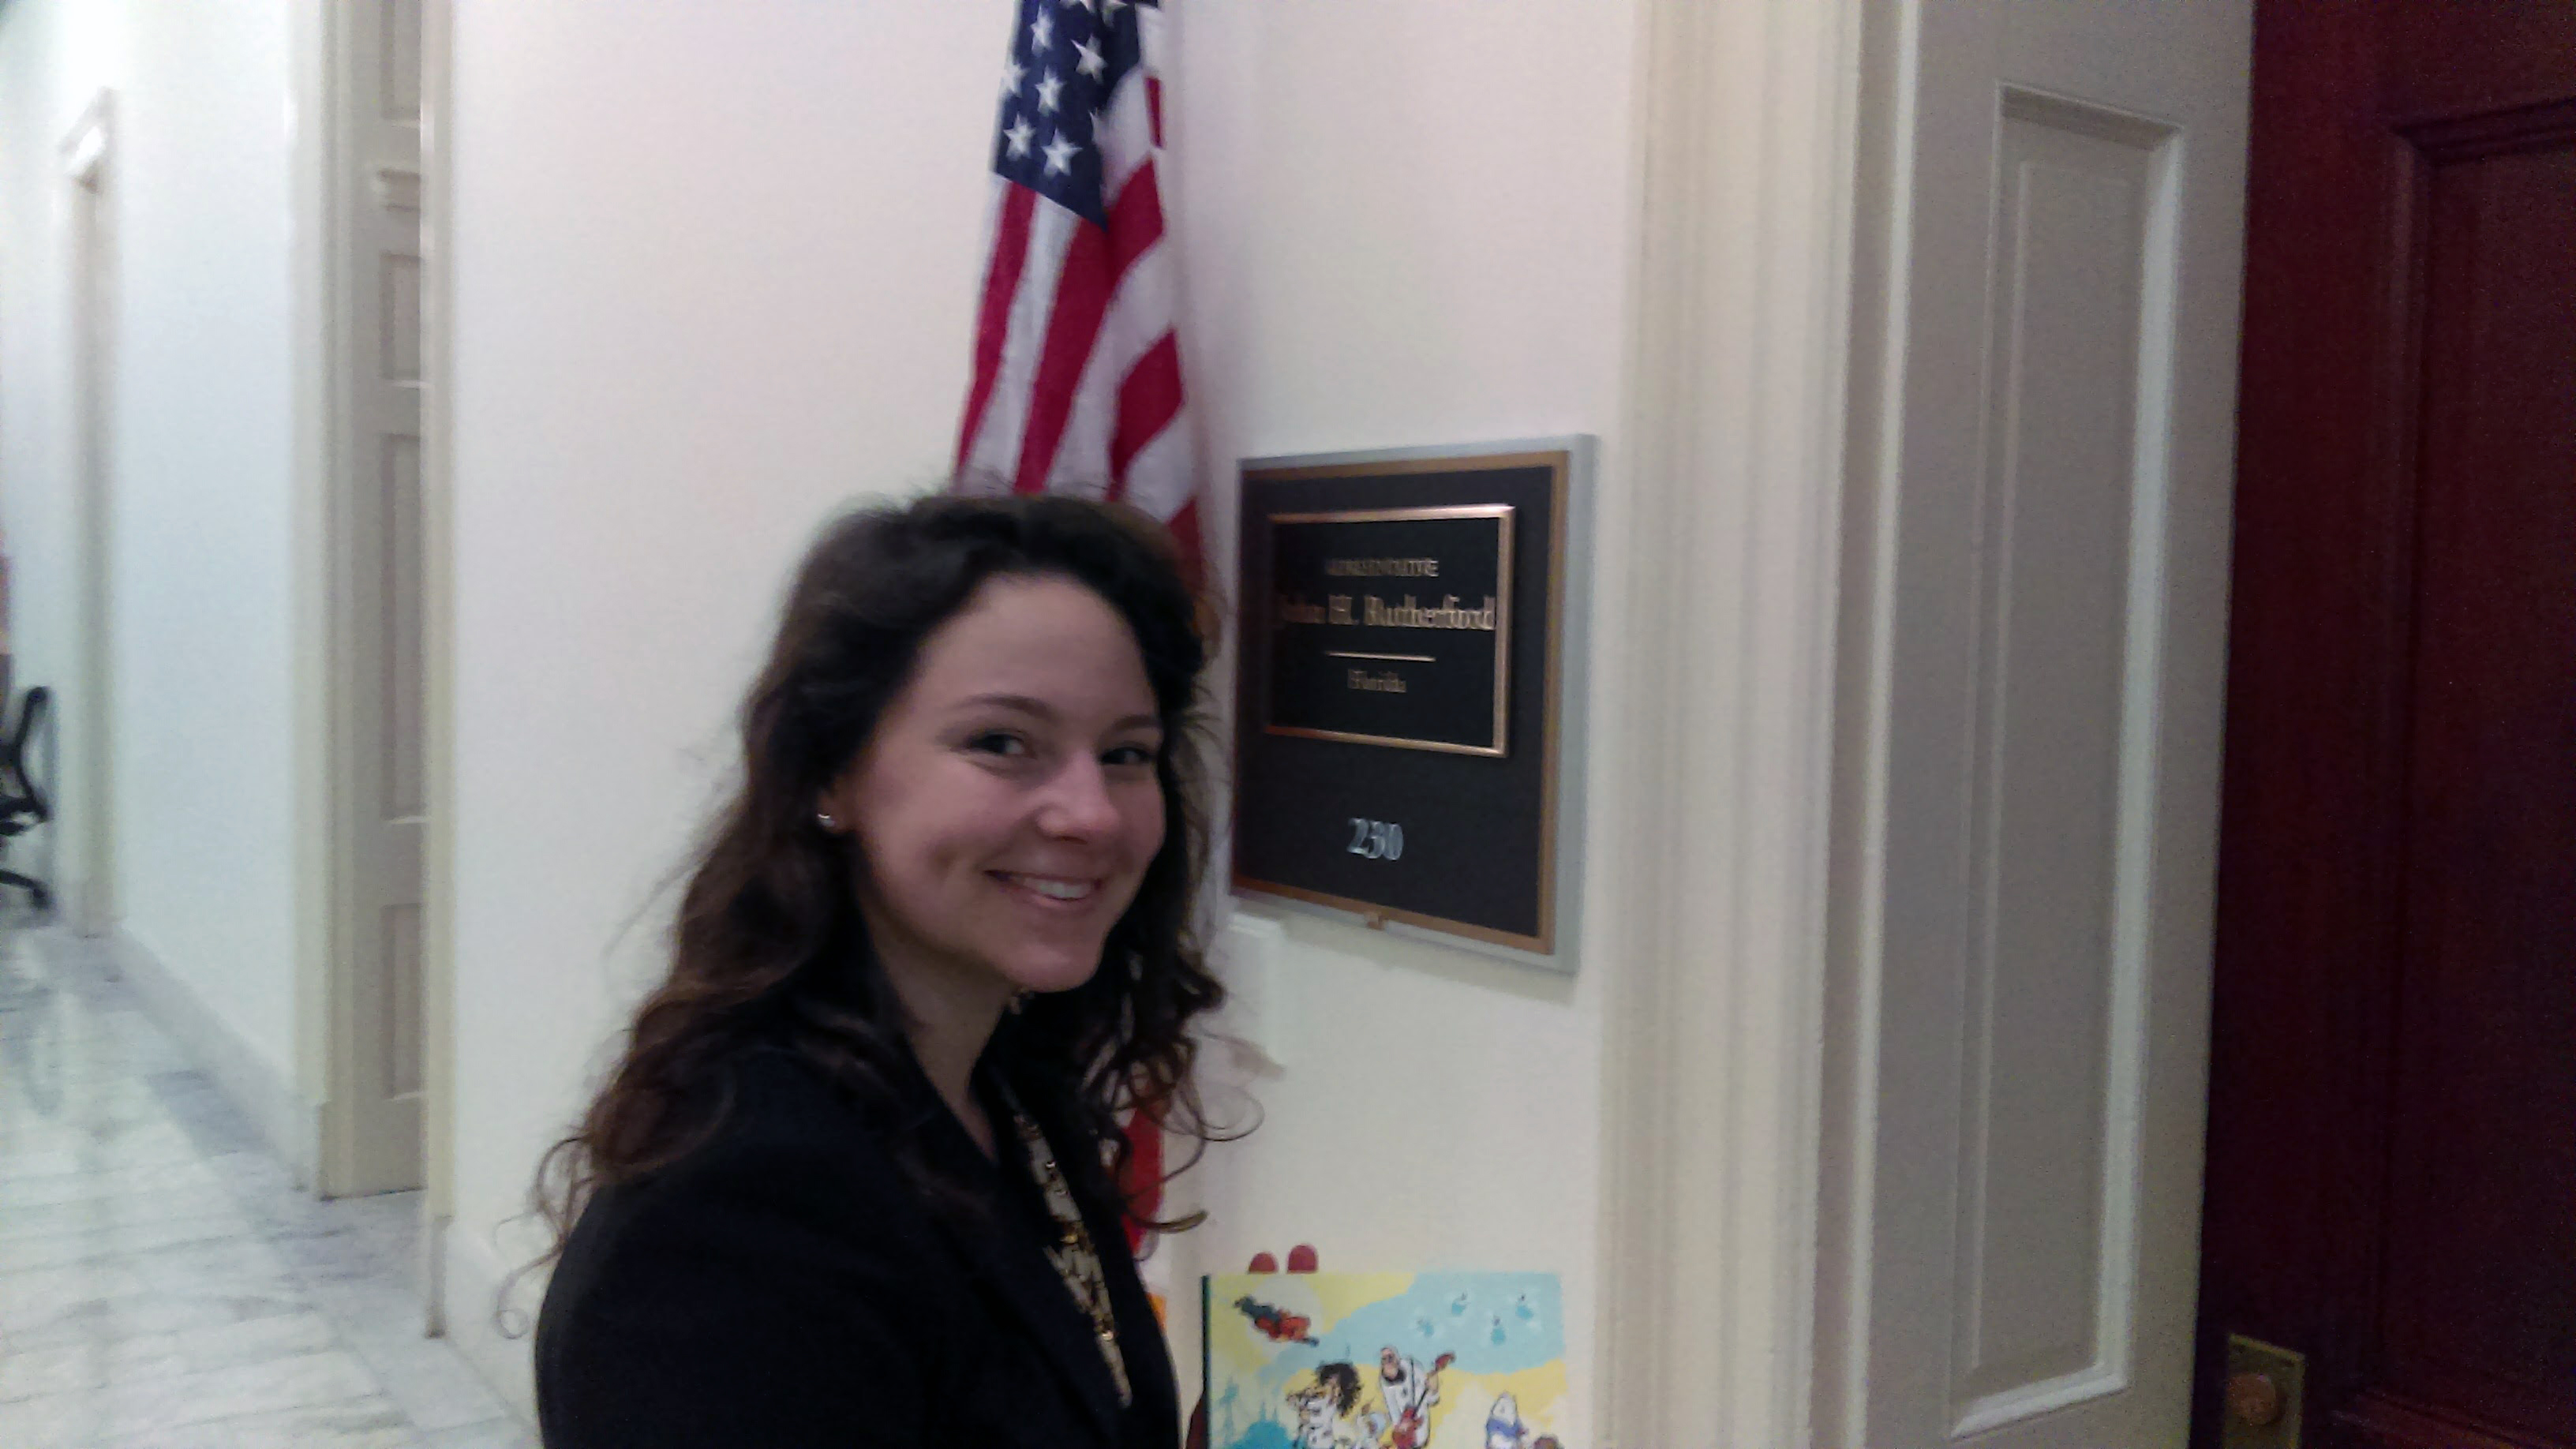 Katharine Sucher at Rep. Rutherford's office | Island Press